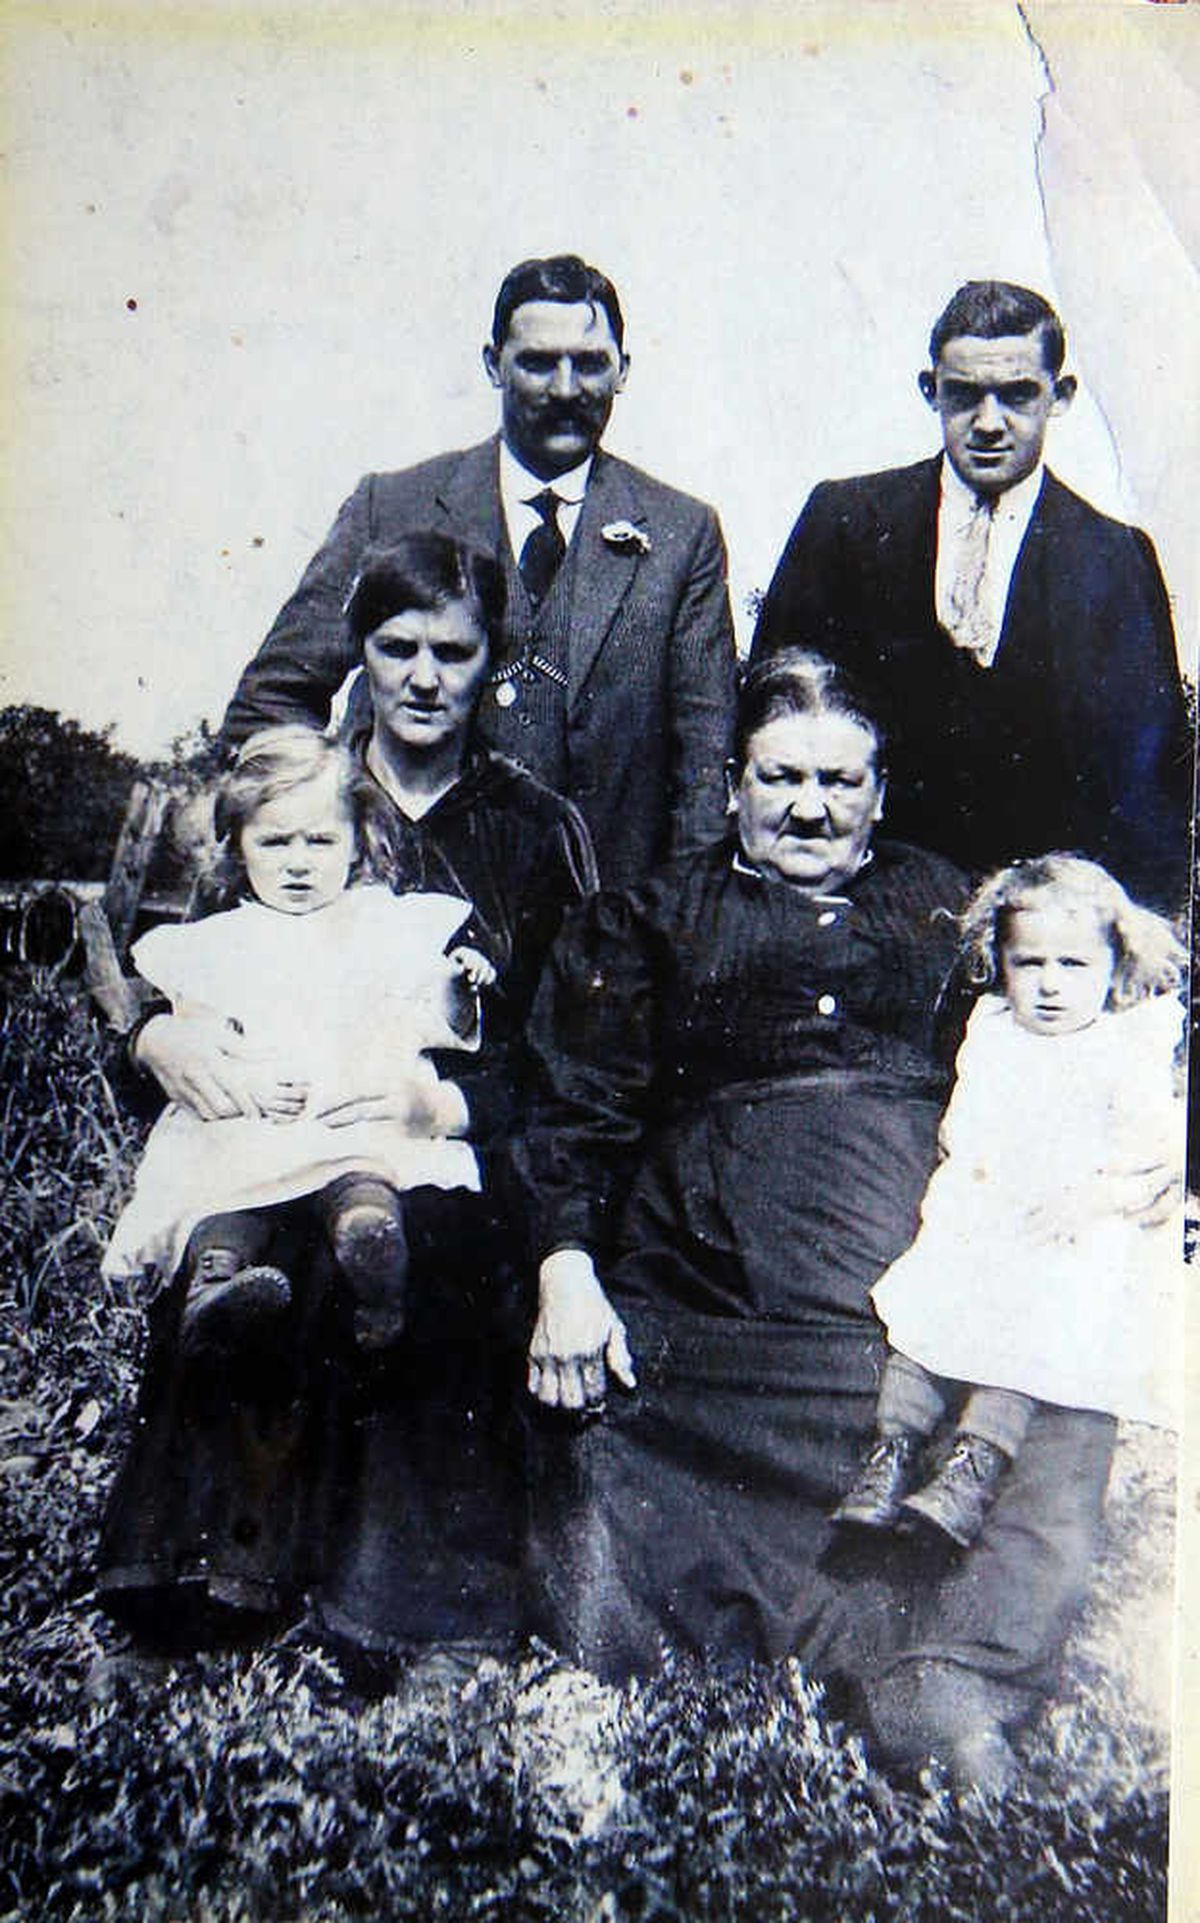 The family pictured in 1921 when Robert and Jim were 2. L/R Robert Fletcher, Florry Hall (aunt), Bill Hall (uncle), Grandmother (don't know name), Richard Hall (uncle), Jim Fletcher